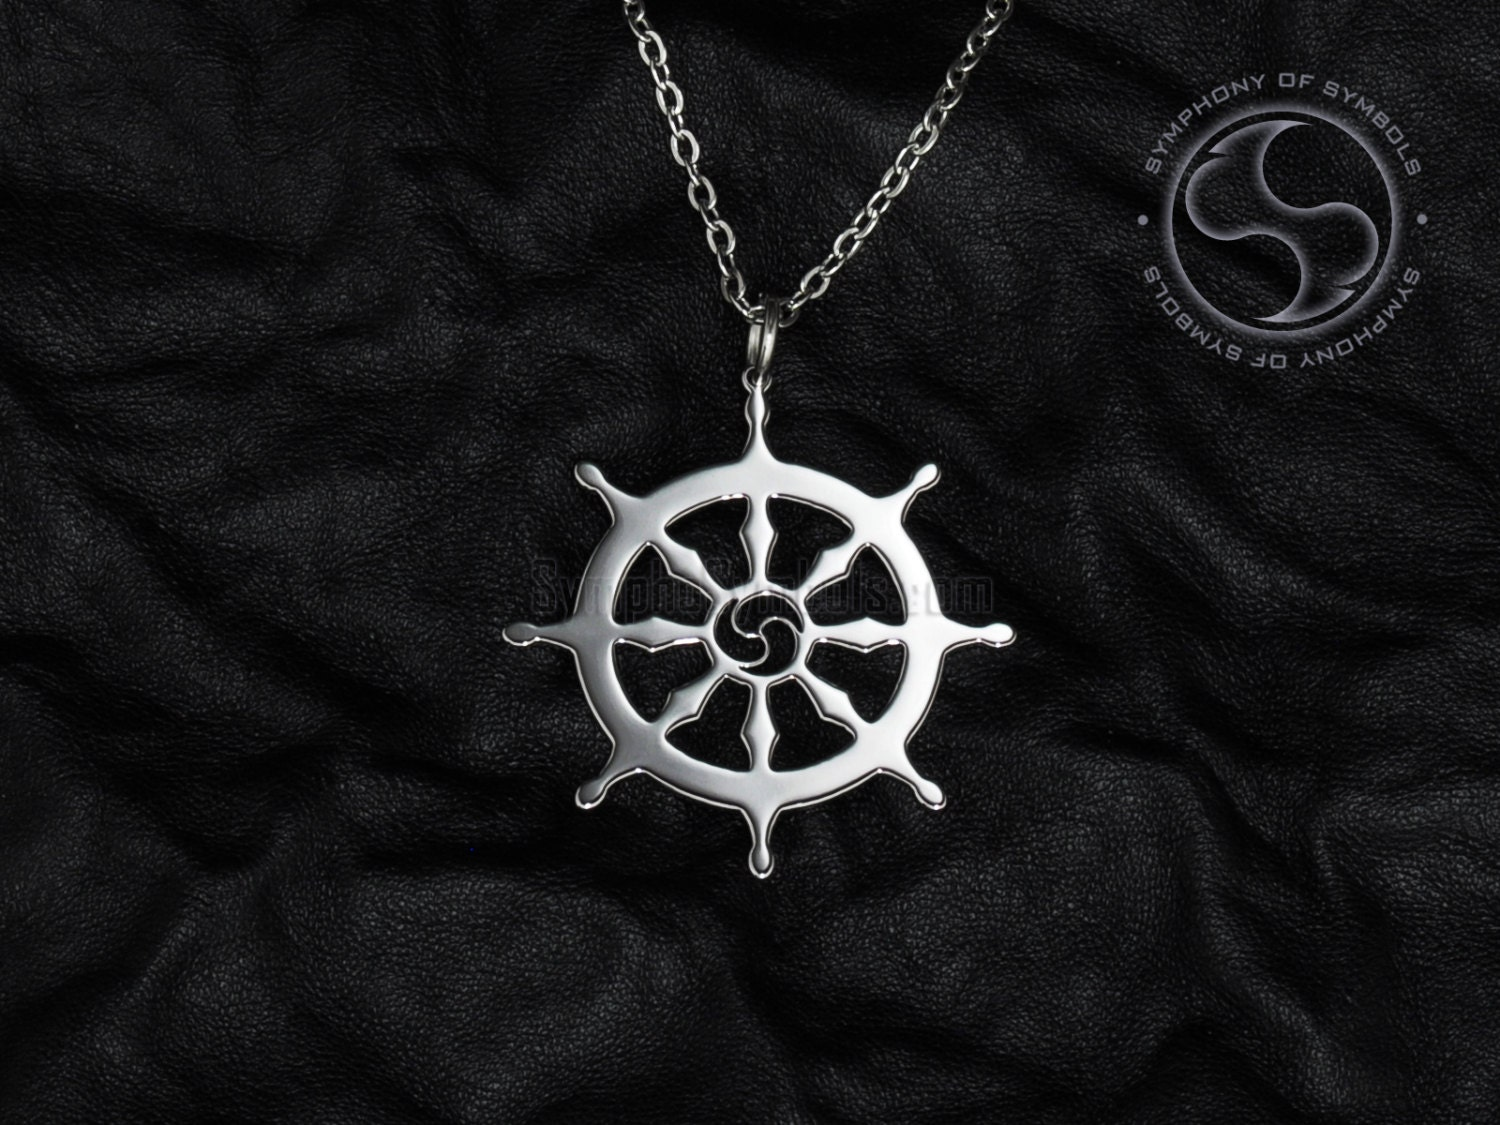 Dharma wheel pendant buddhism symbol stainless steel jewelry zoom aloadofball Gallery